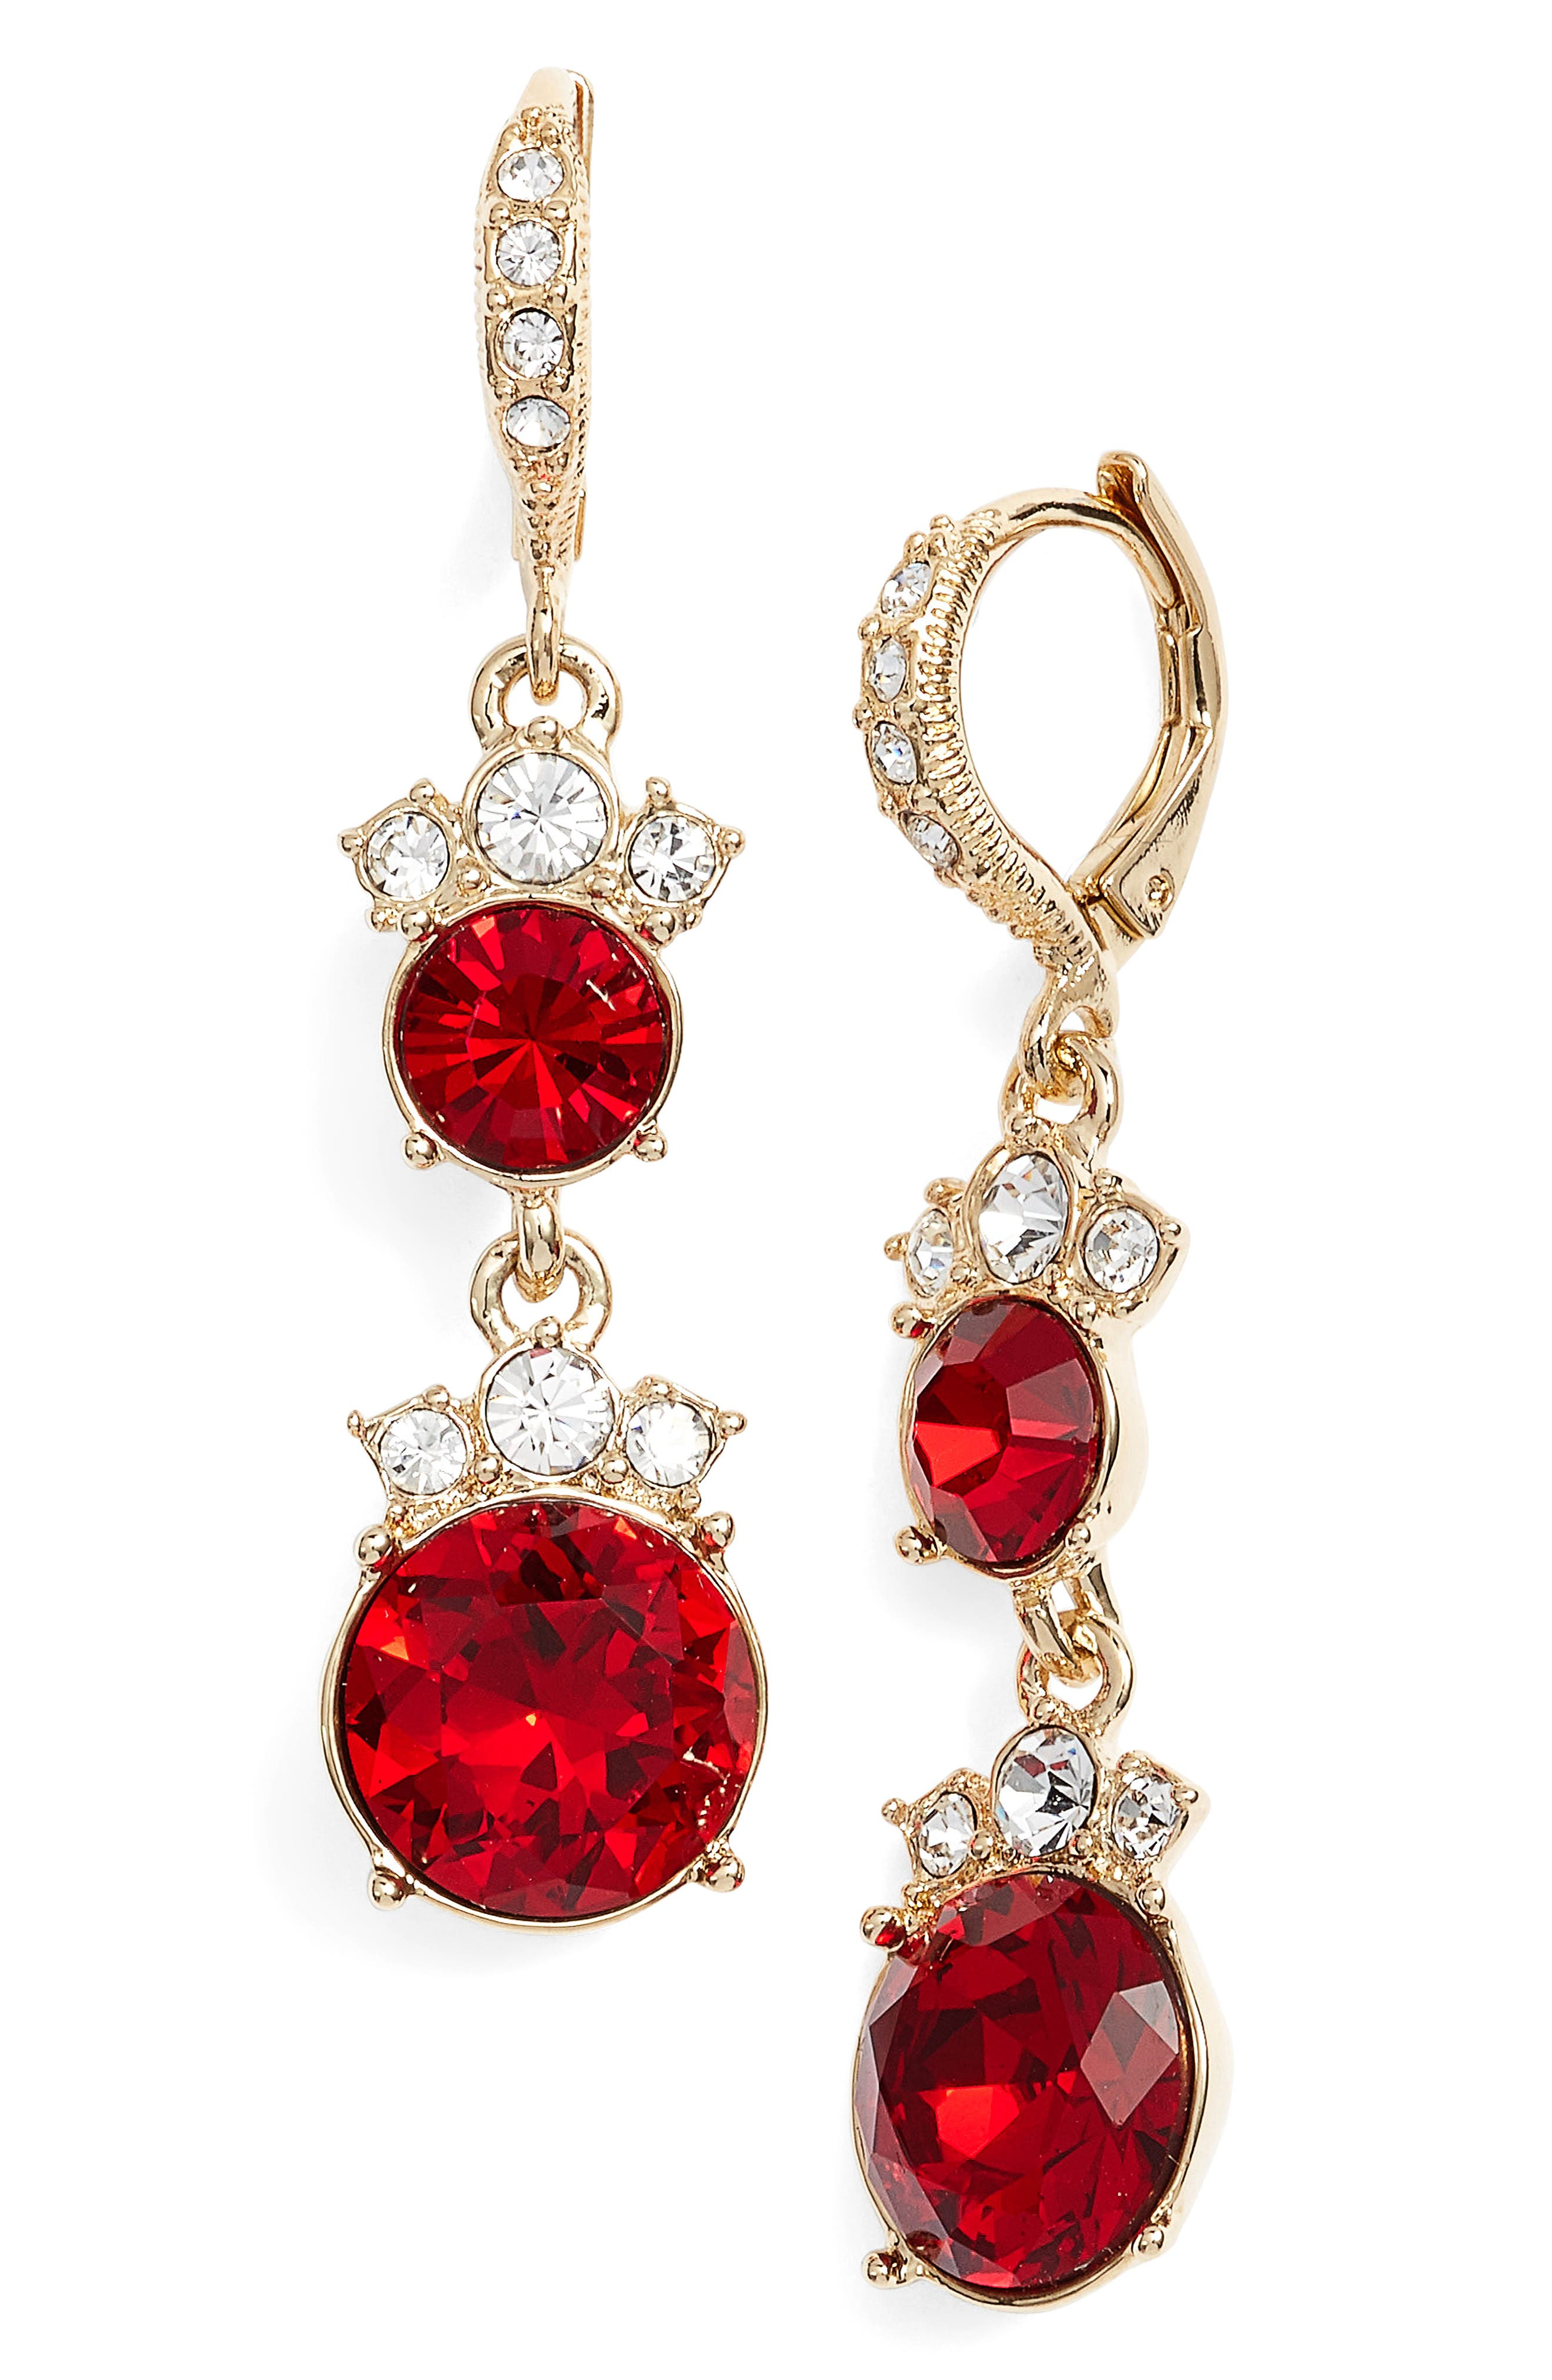 Crystal Drop Earrings,                             Main thumbnail 1, color,                             Red/ Gold